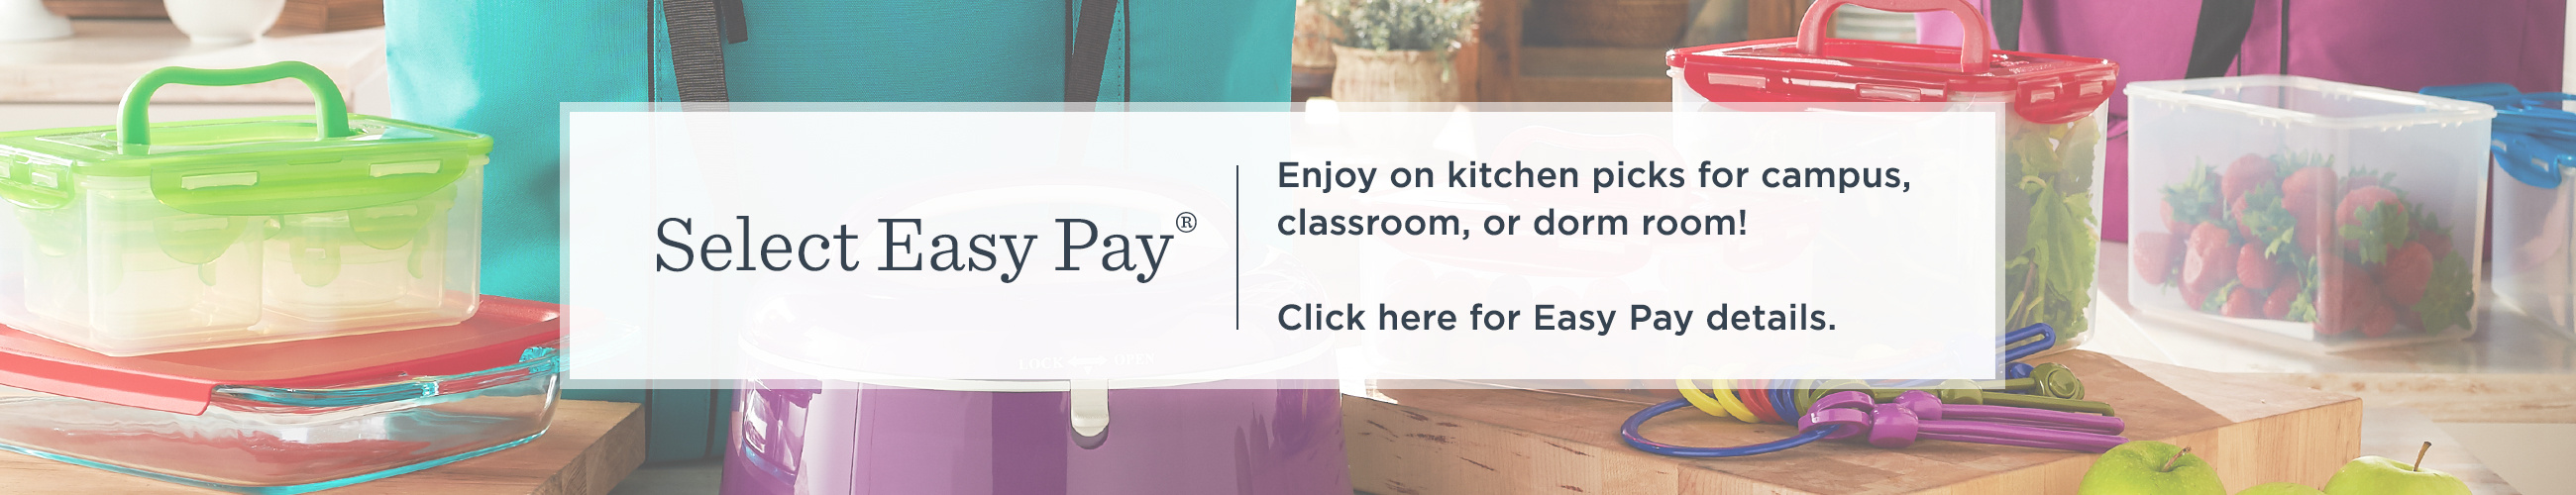 Select Easy Pay®  Enjoy on kitchen picks for campus, classroom, or dorm room!  Click here for Easy Pay details.